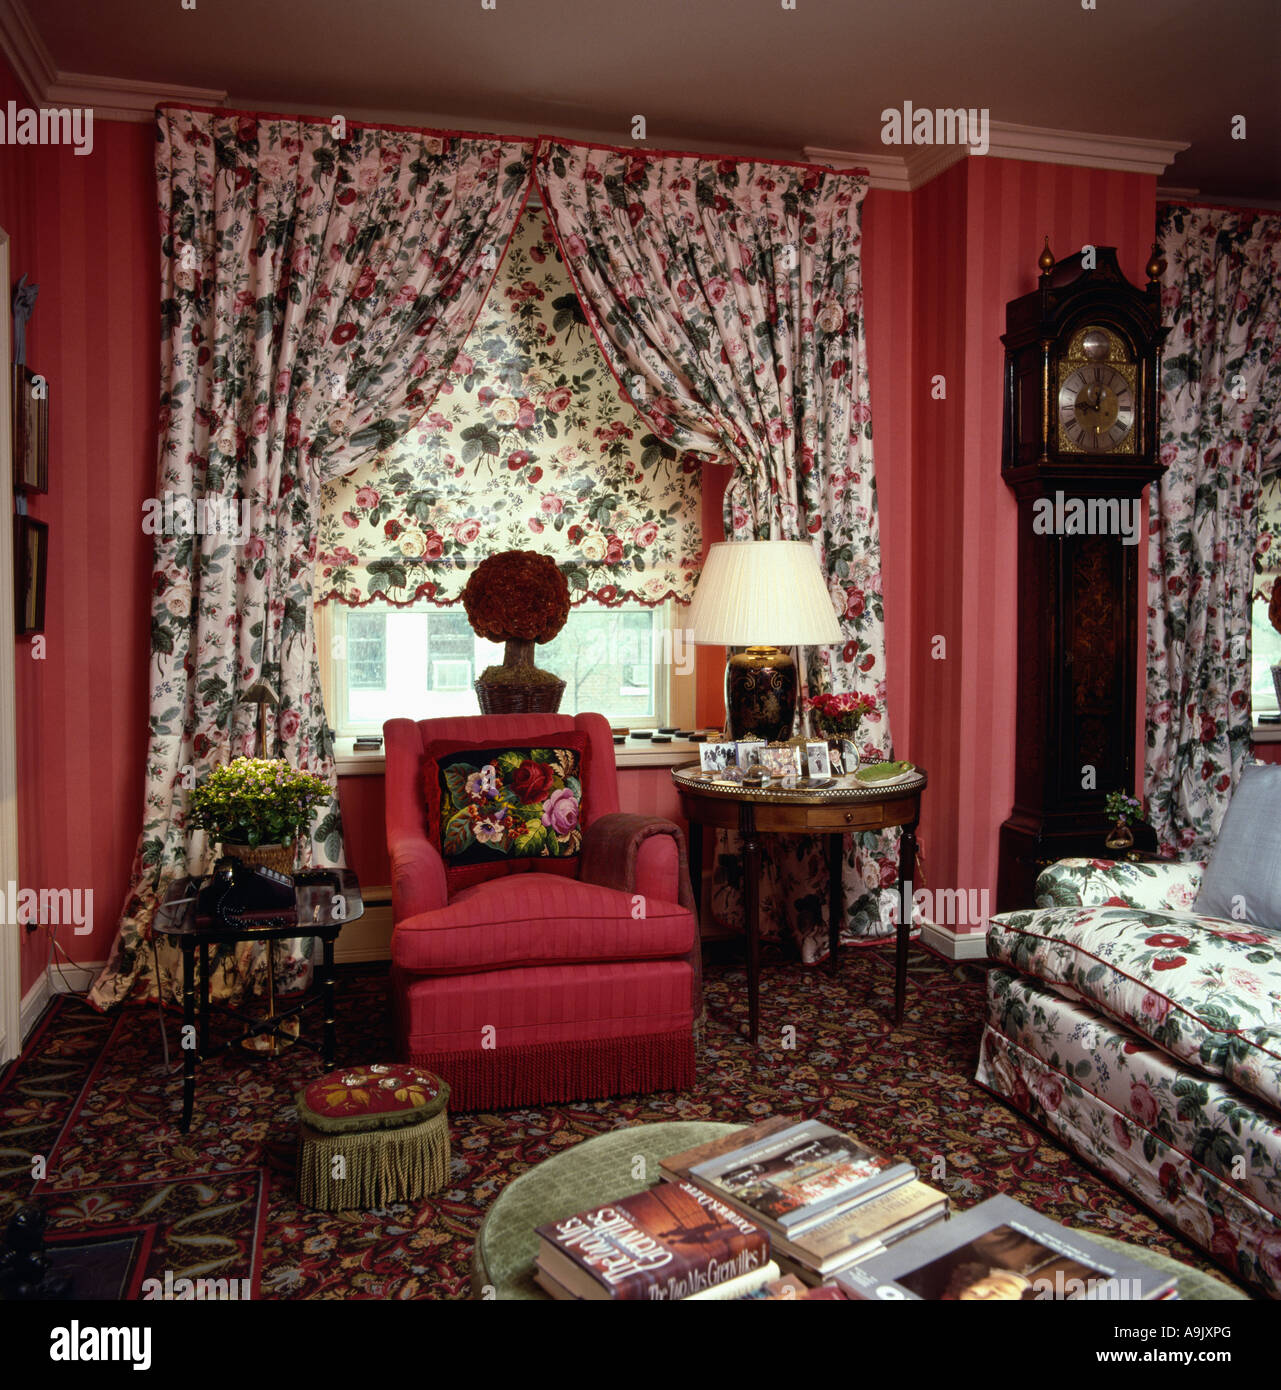 Red patterned curtains living room - Floral Patterned Curtains And Matching Blind In Red Eighties Livingroom With Red Armchair And Longcase Clock